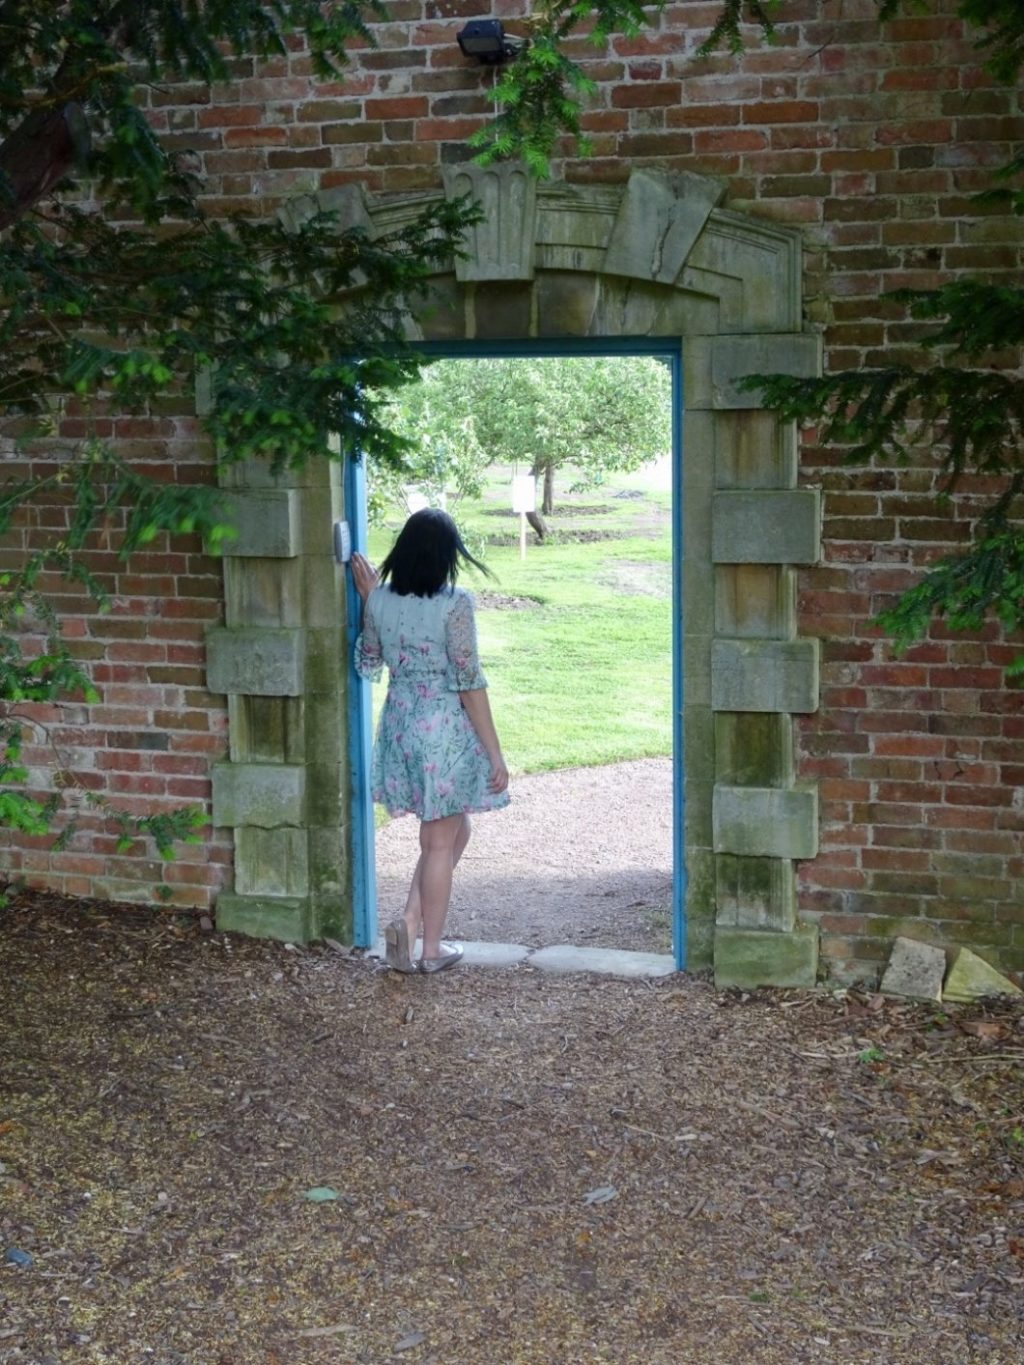 The Walled Gardens at Croome Court Interview: The Magic of Walled Gardens